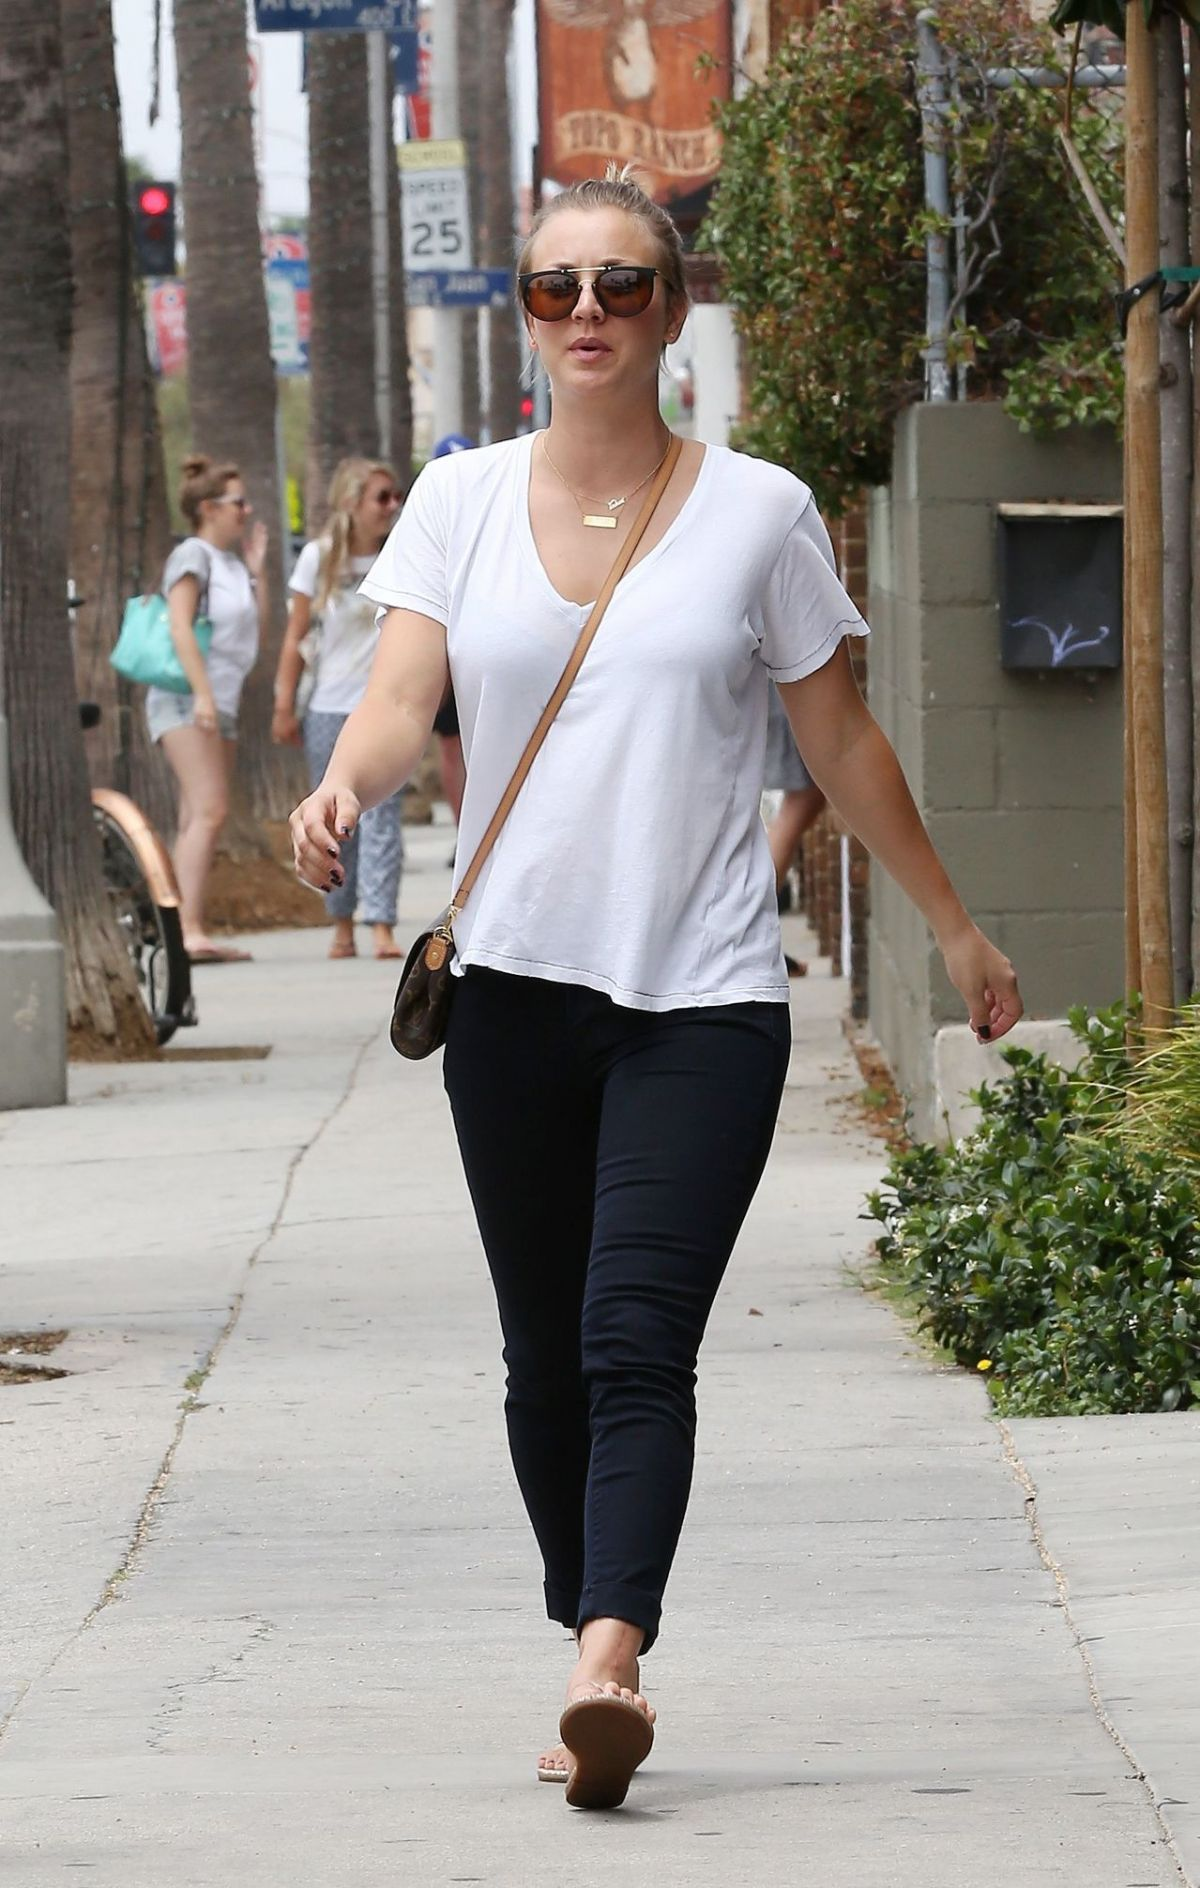 Kaley Cuoco Out For Lunch In Venice